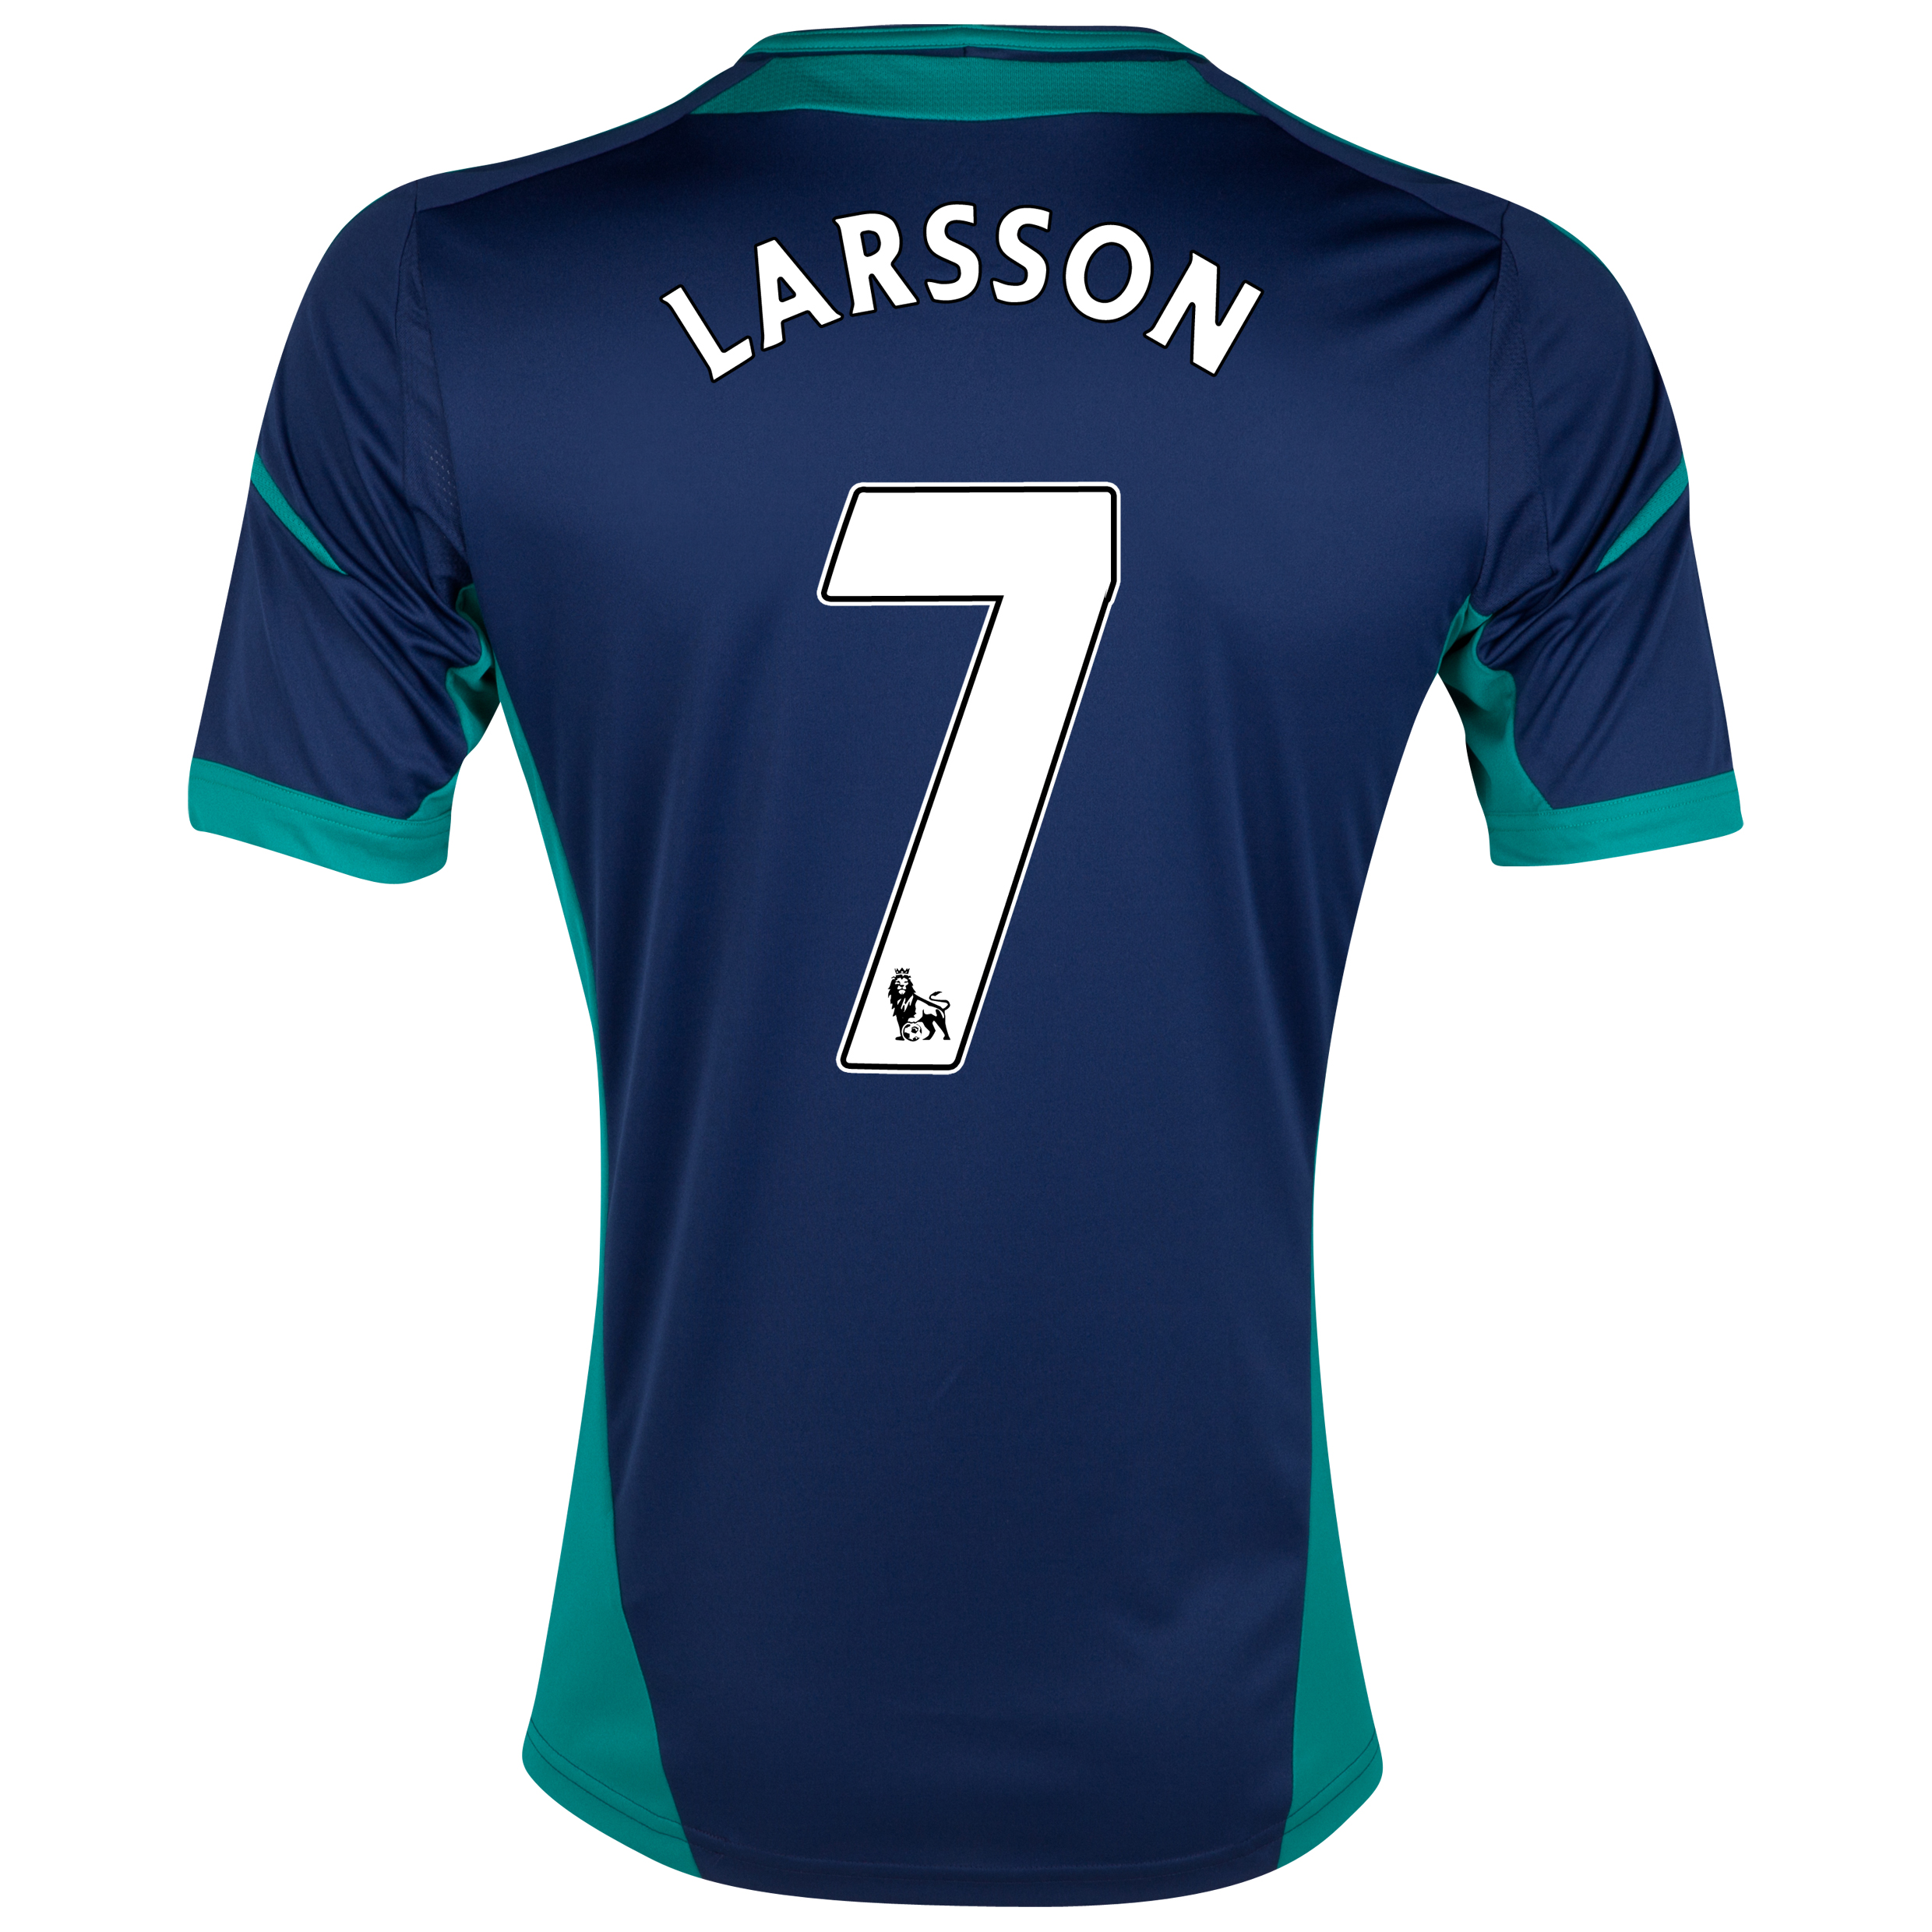 Sunderland Away Shirt 2012/13 with Larsson 7 printing